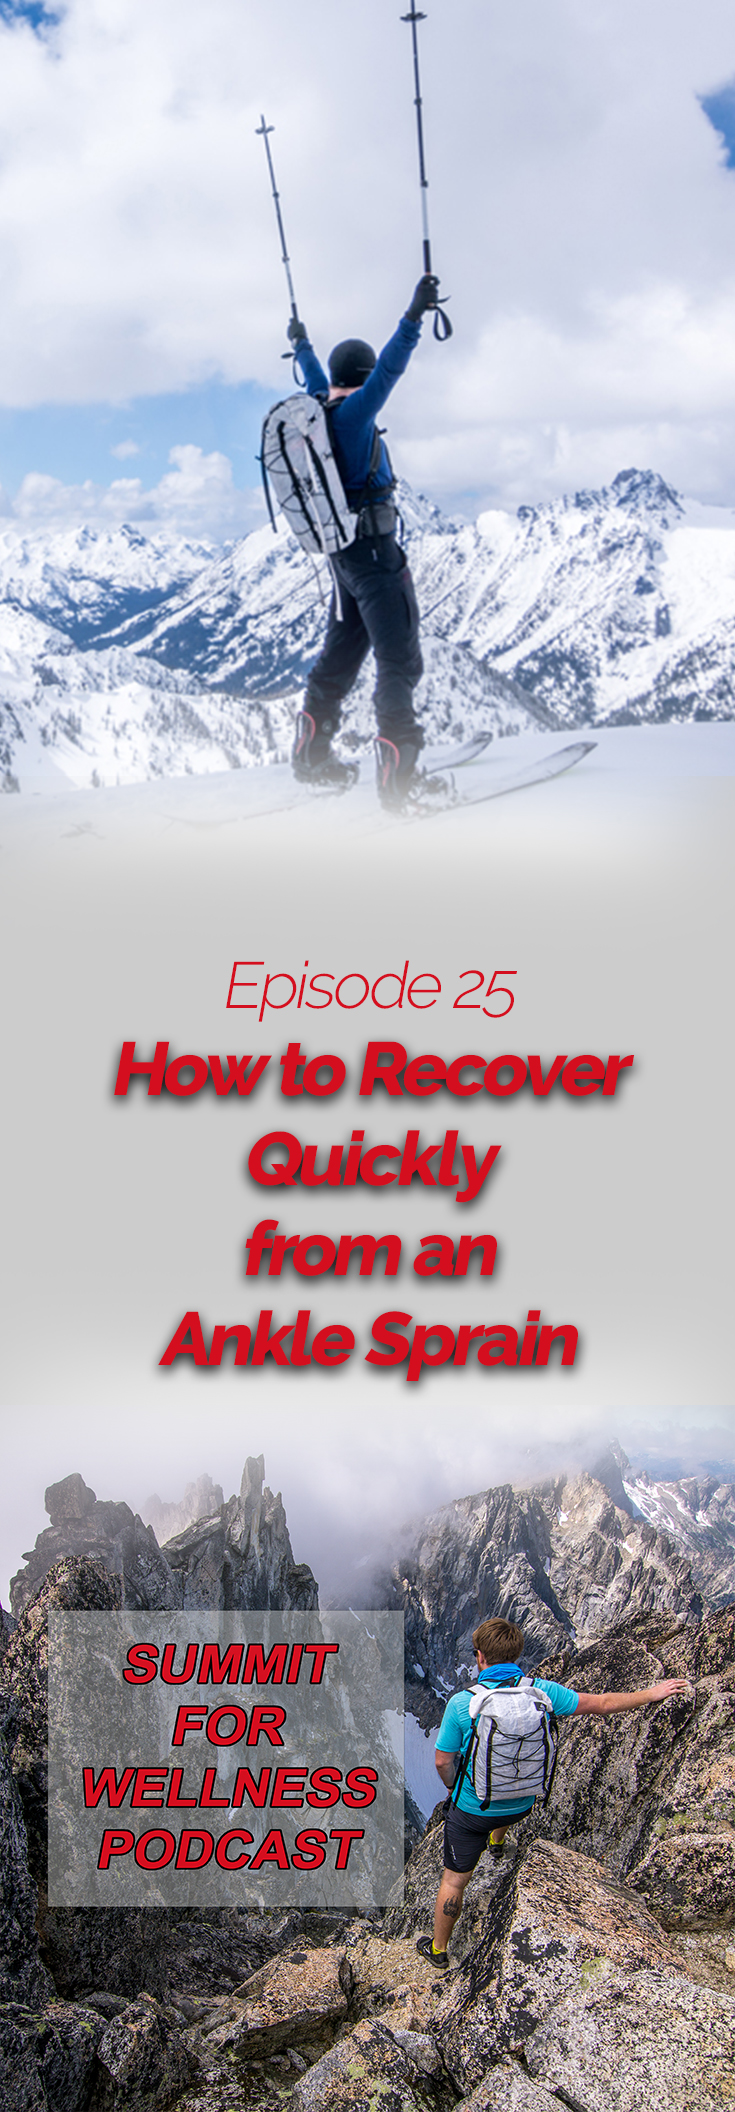 Learn how to recover from ankle sprains in under a week